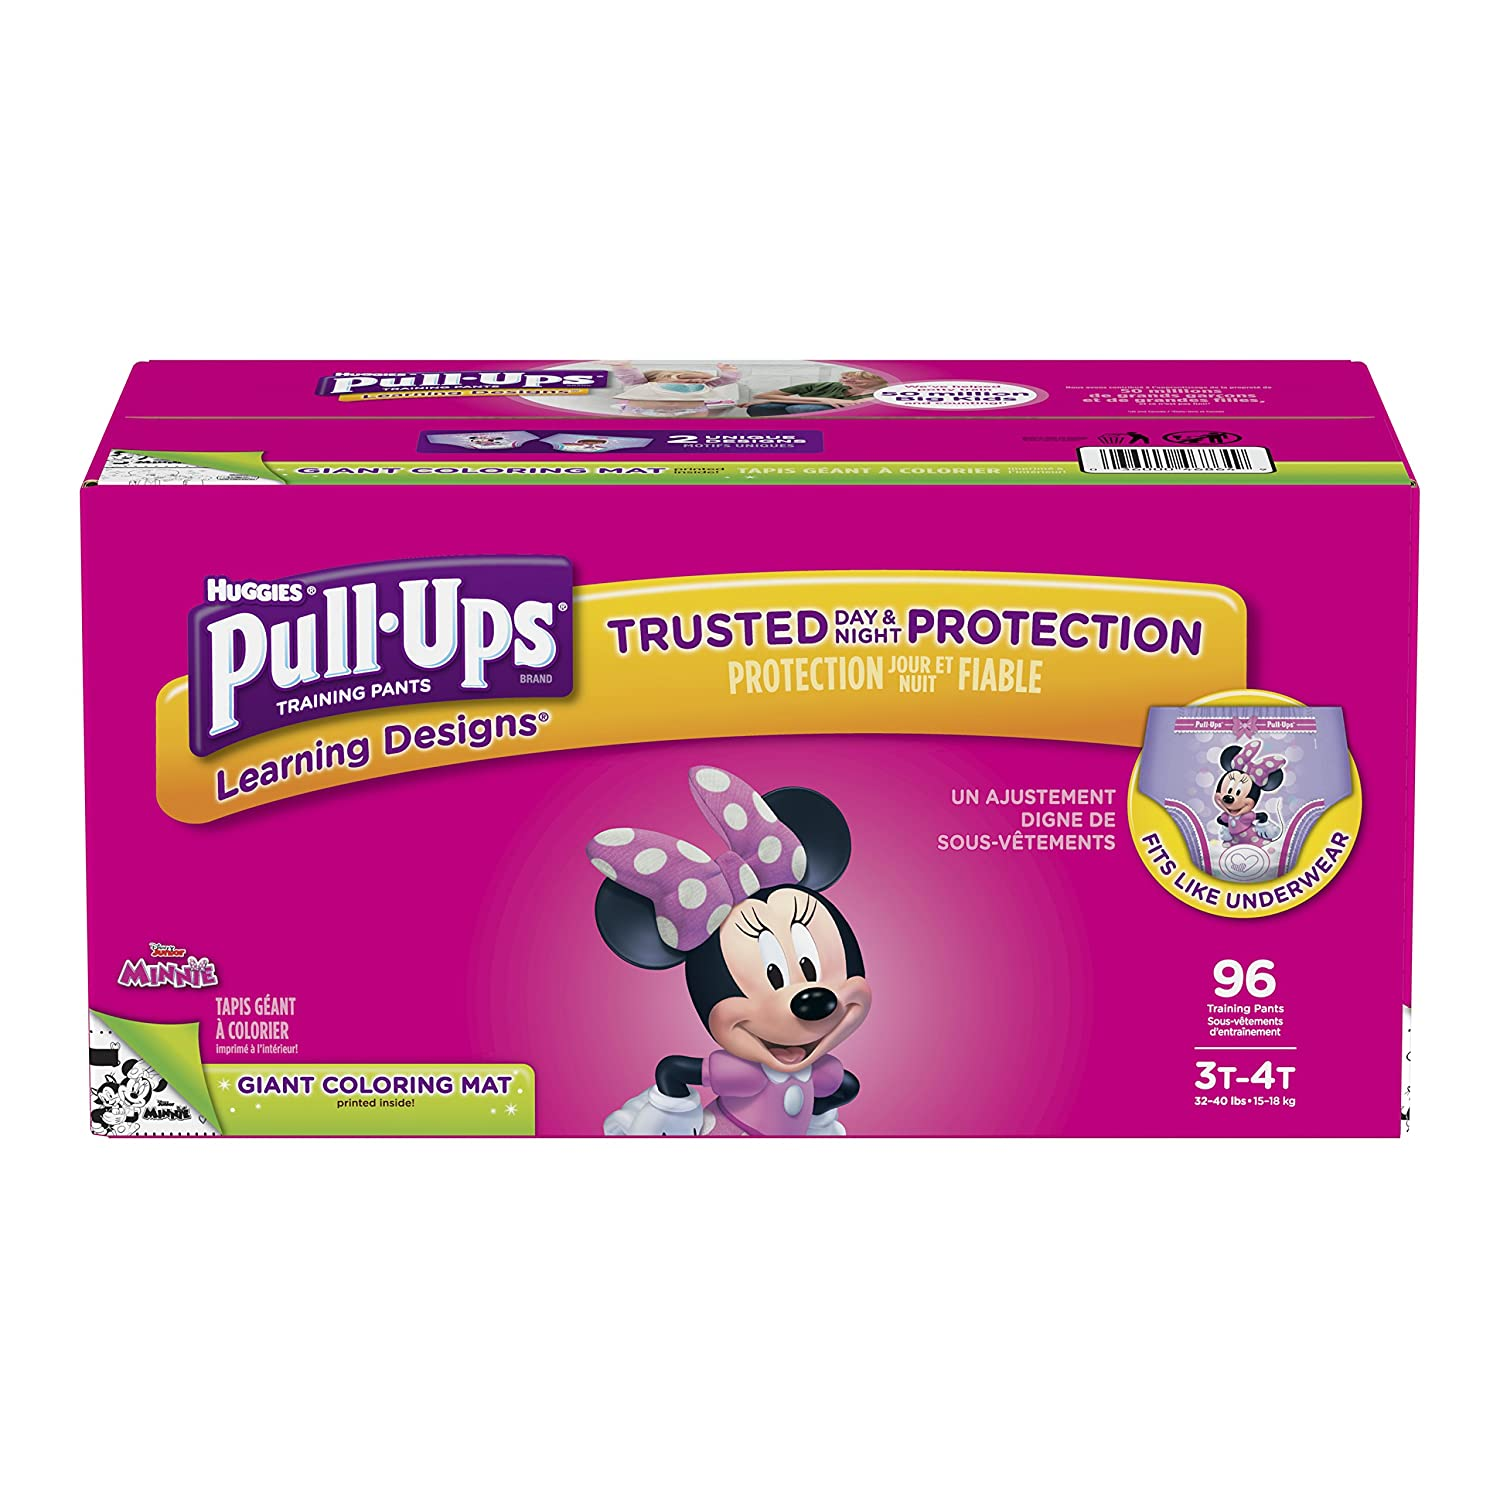 Pull-Ups Learning Designs Training Pants for Girls, 4T-5T (38-50 lb.), 82 Count Kimberly Clark